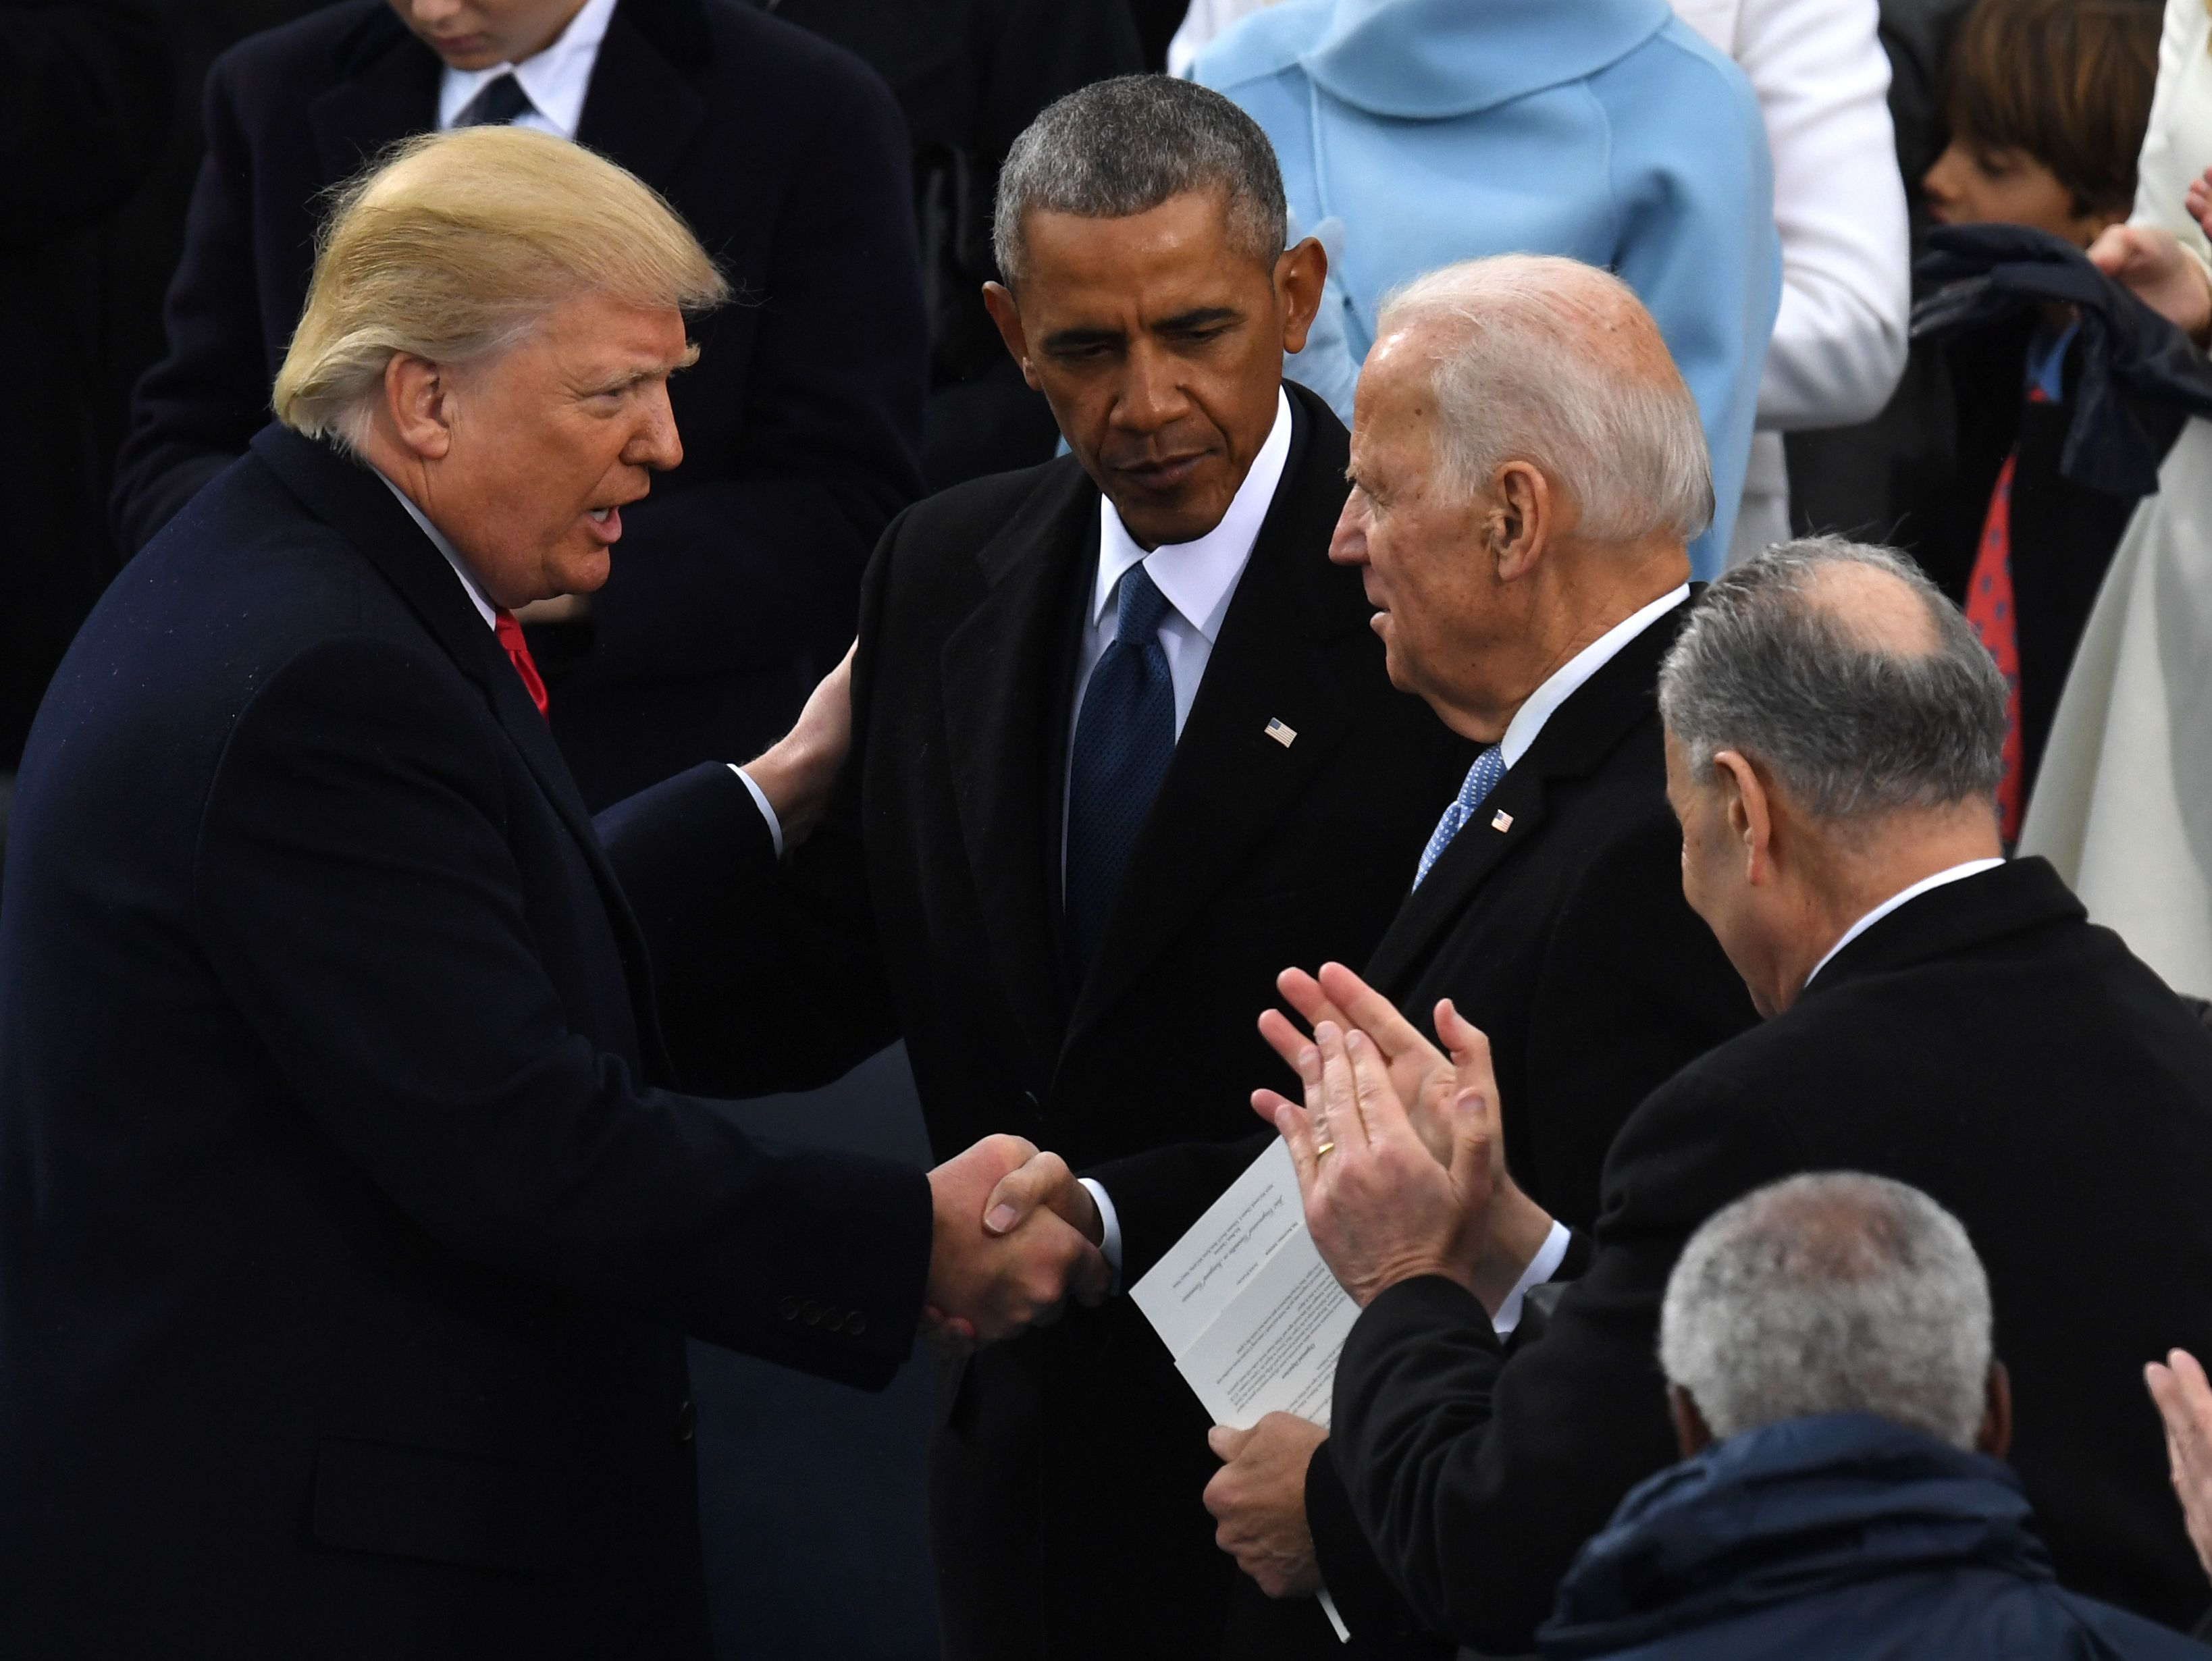 U.S. President Donald Trump shakes hands with former U.S. President Barack Obama and former Vice President Joe Biden after being sworn in as President on January 20, 2017 at the U.S. Capitol in Washington, DC.